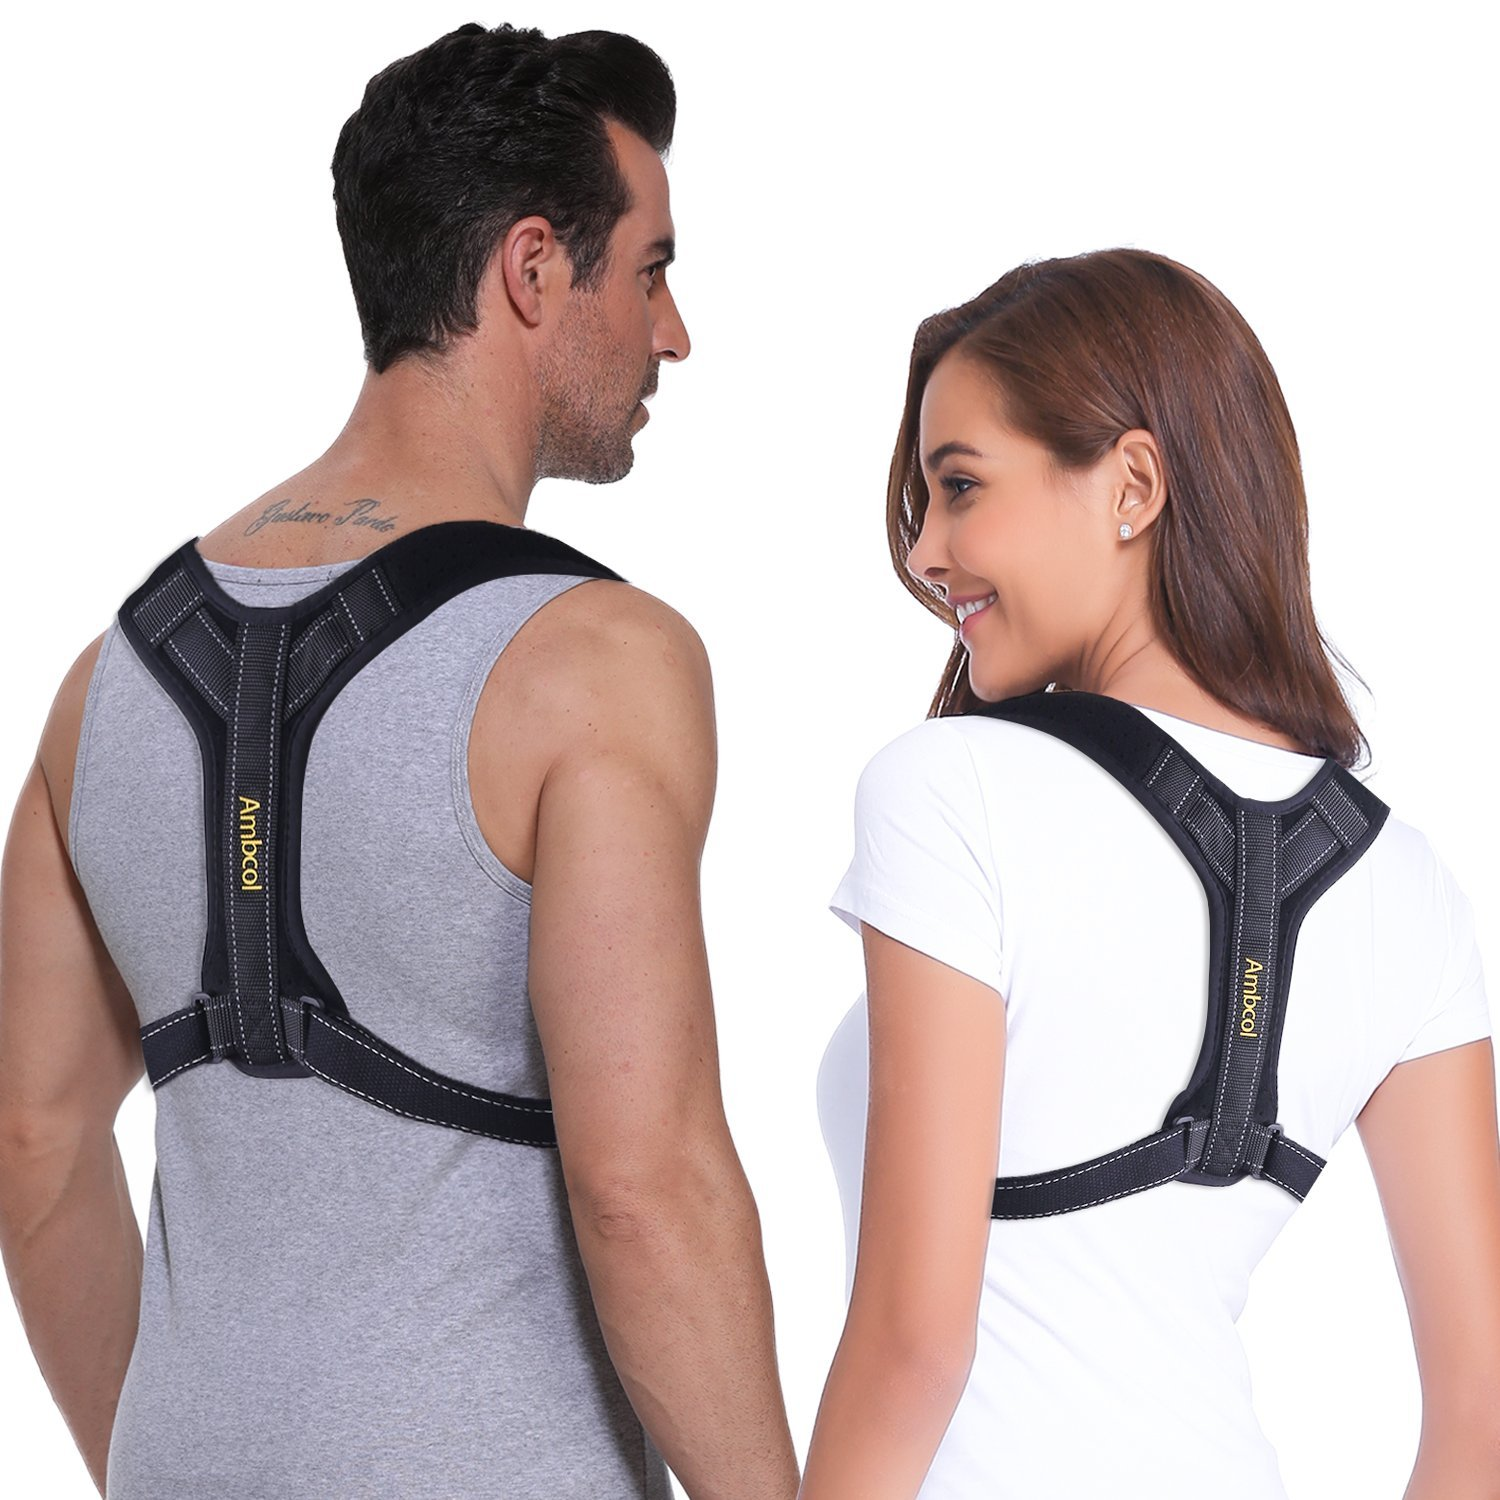 Ambcol Back Posture Corrector for Women and Men, Trains Your Back Muscles to Prevent slouching and Provides Back Pain Relief by Ambcol (Image #1)